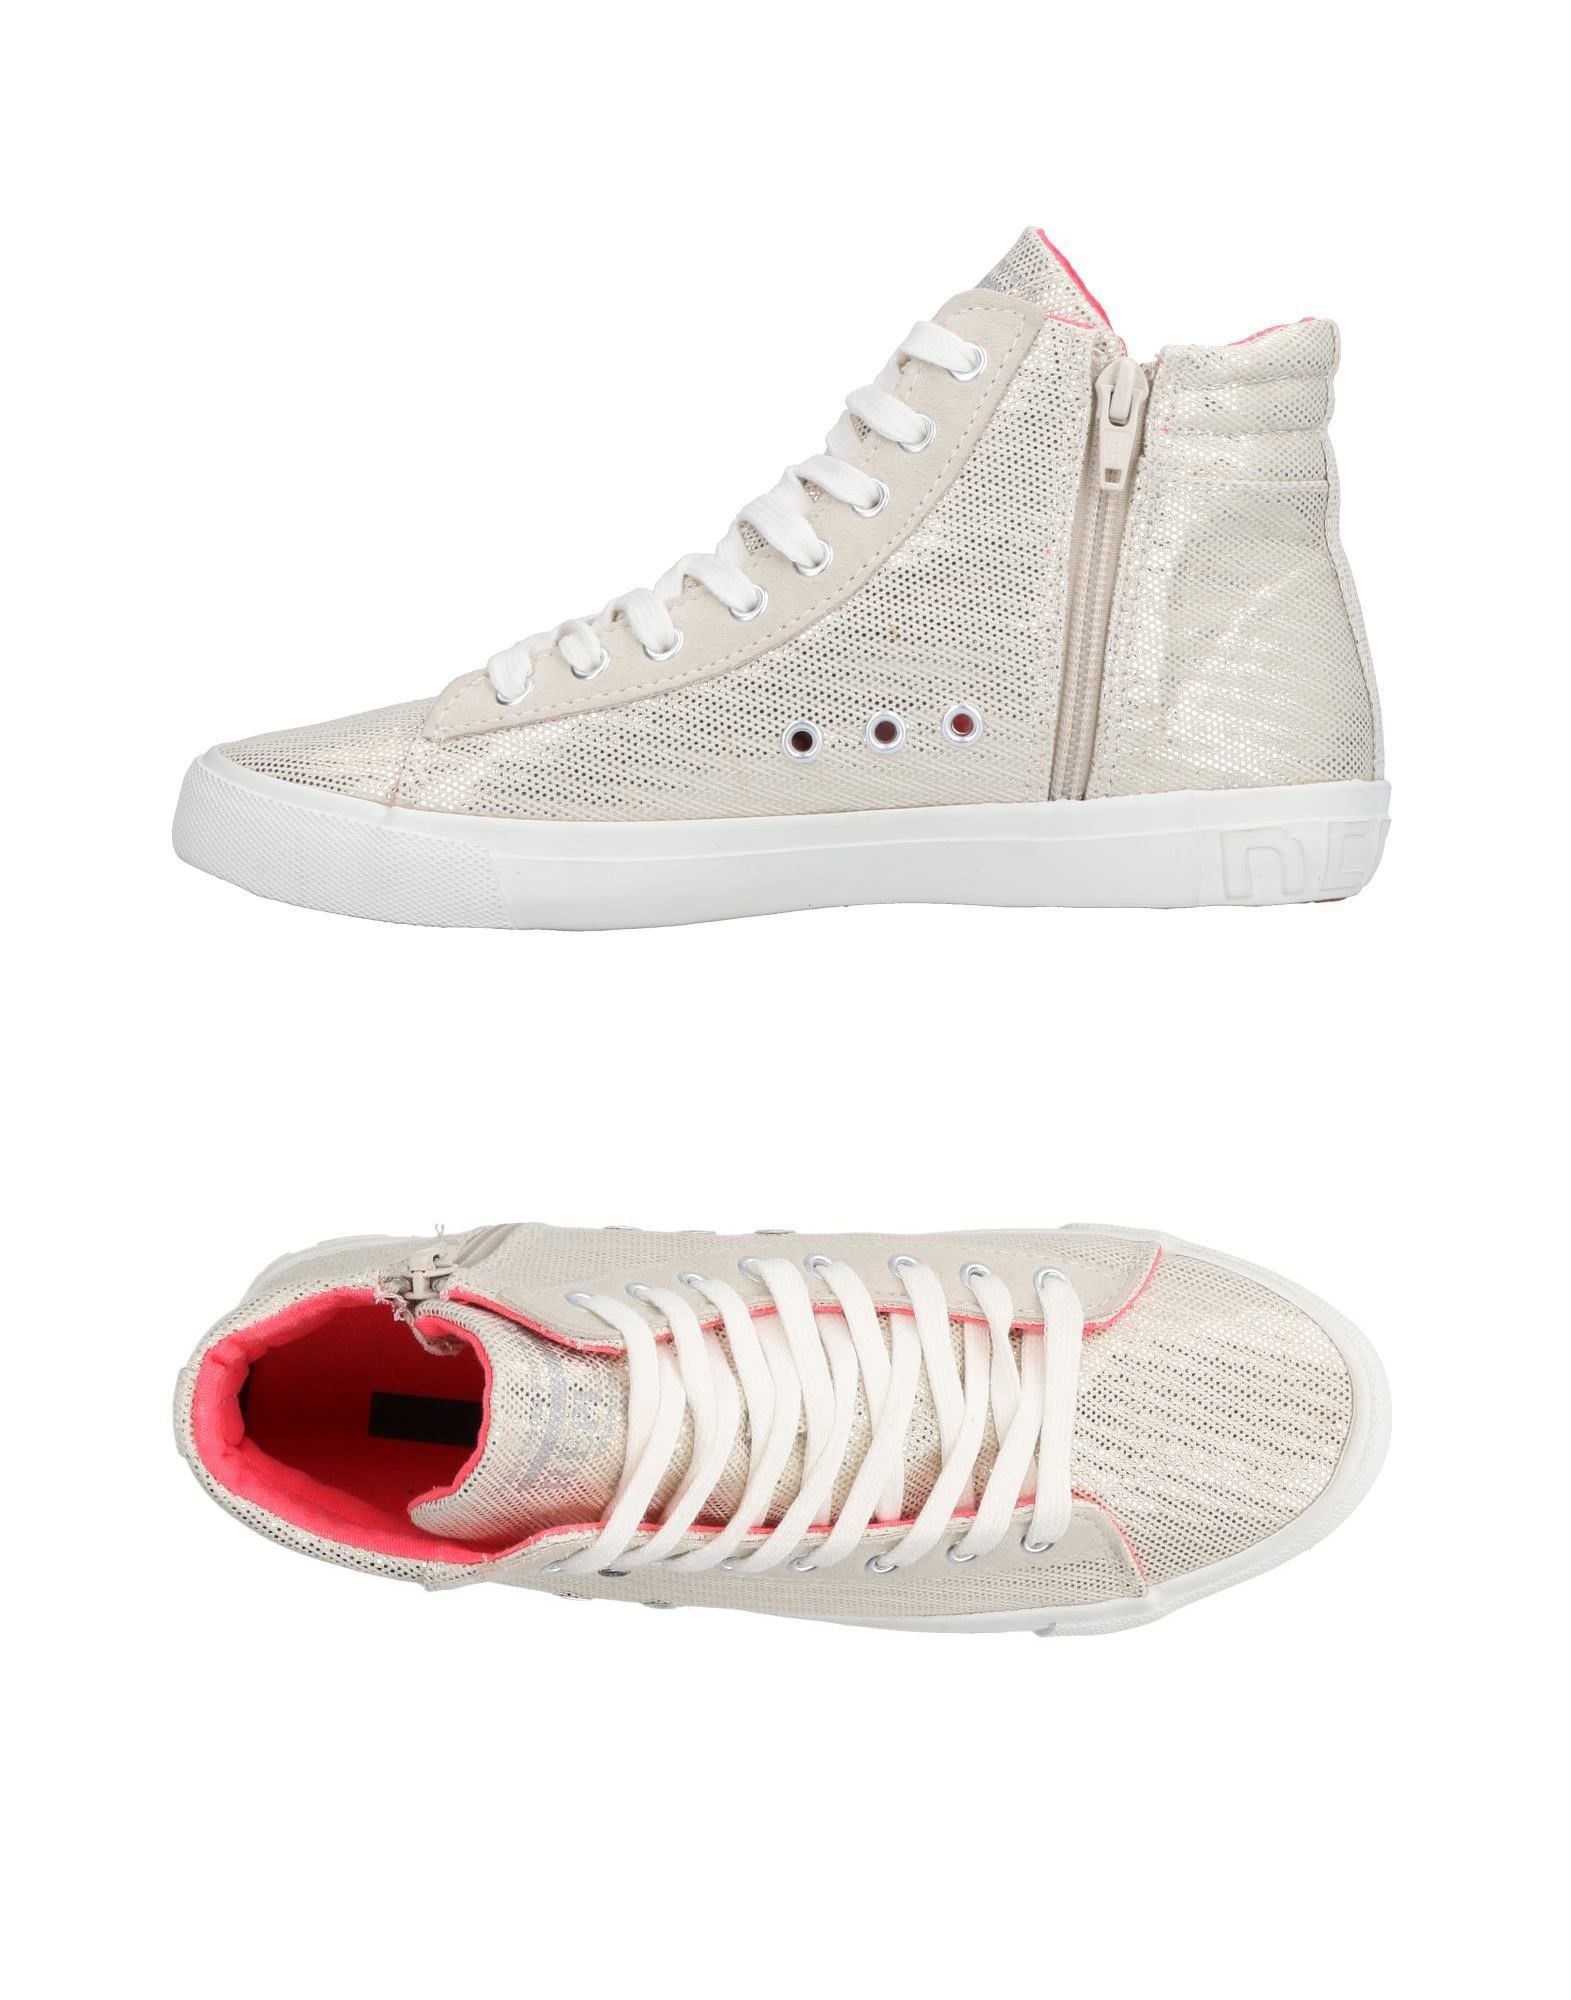 Moda Sneakers Replay Donna Donna Replay - 11464437TA 324778